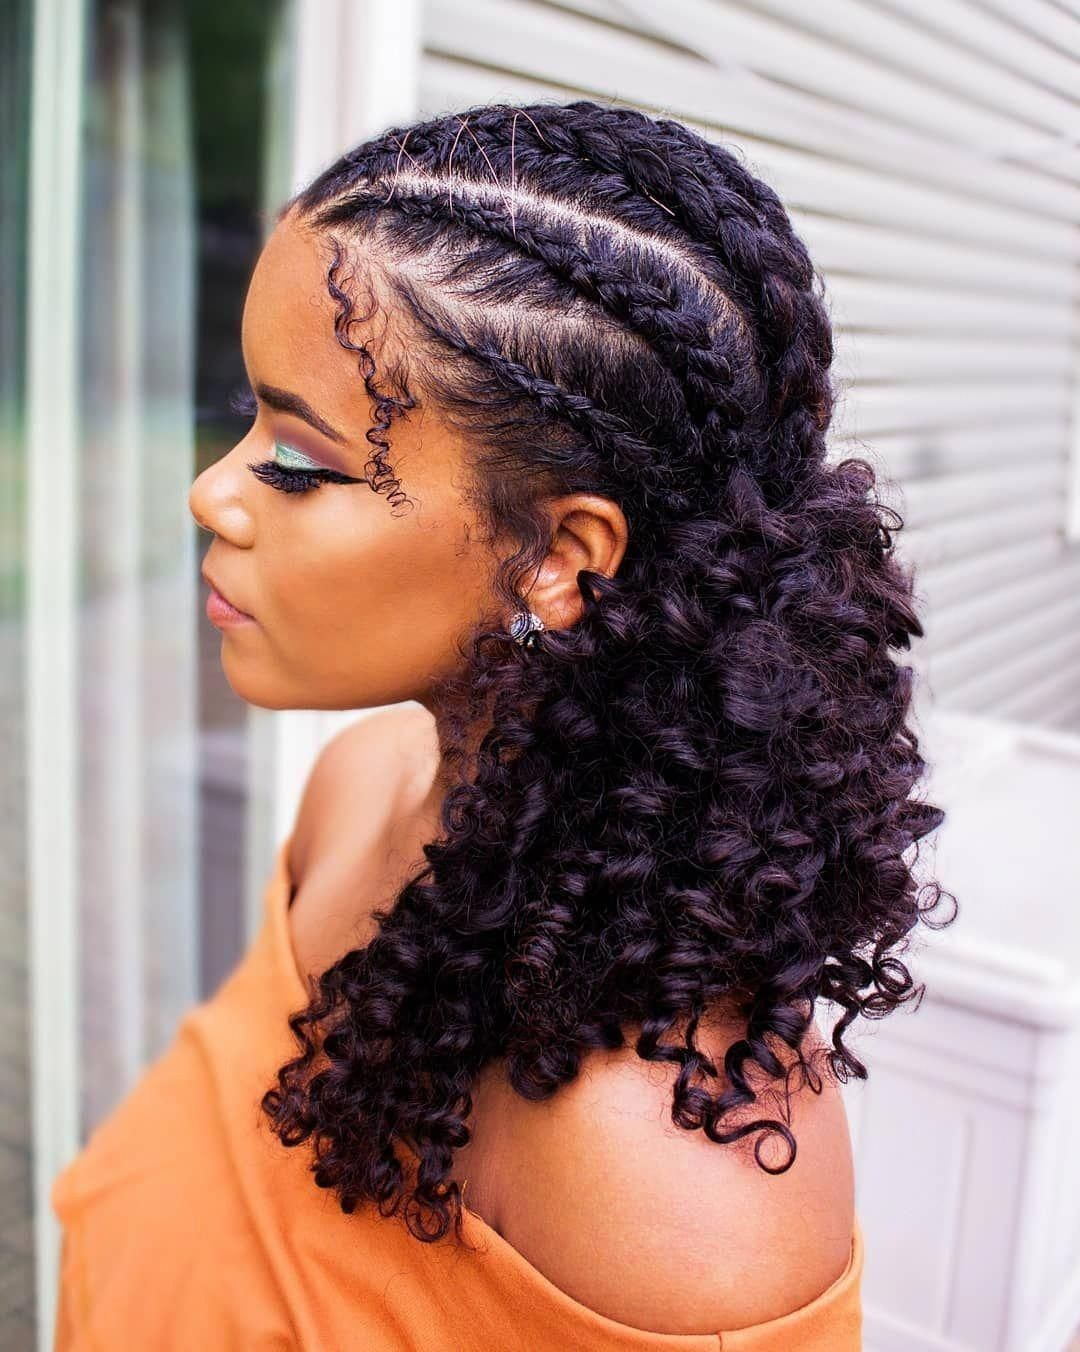 35 Natural Braided Hairstyles Without Weave Natural Braided Hairstyles Natural Hair Styles Braided Hairstyles